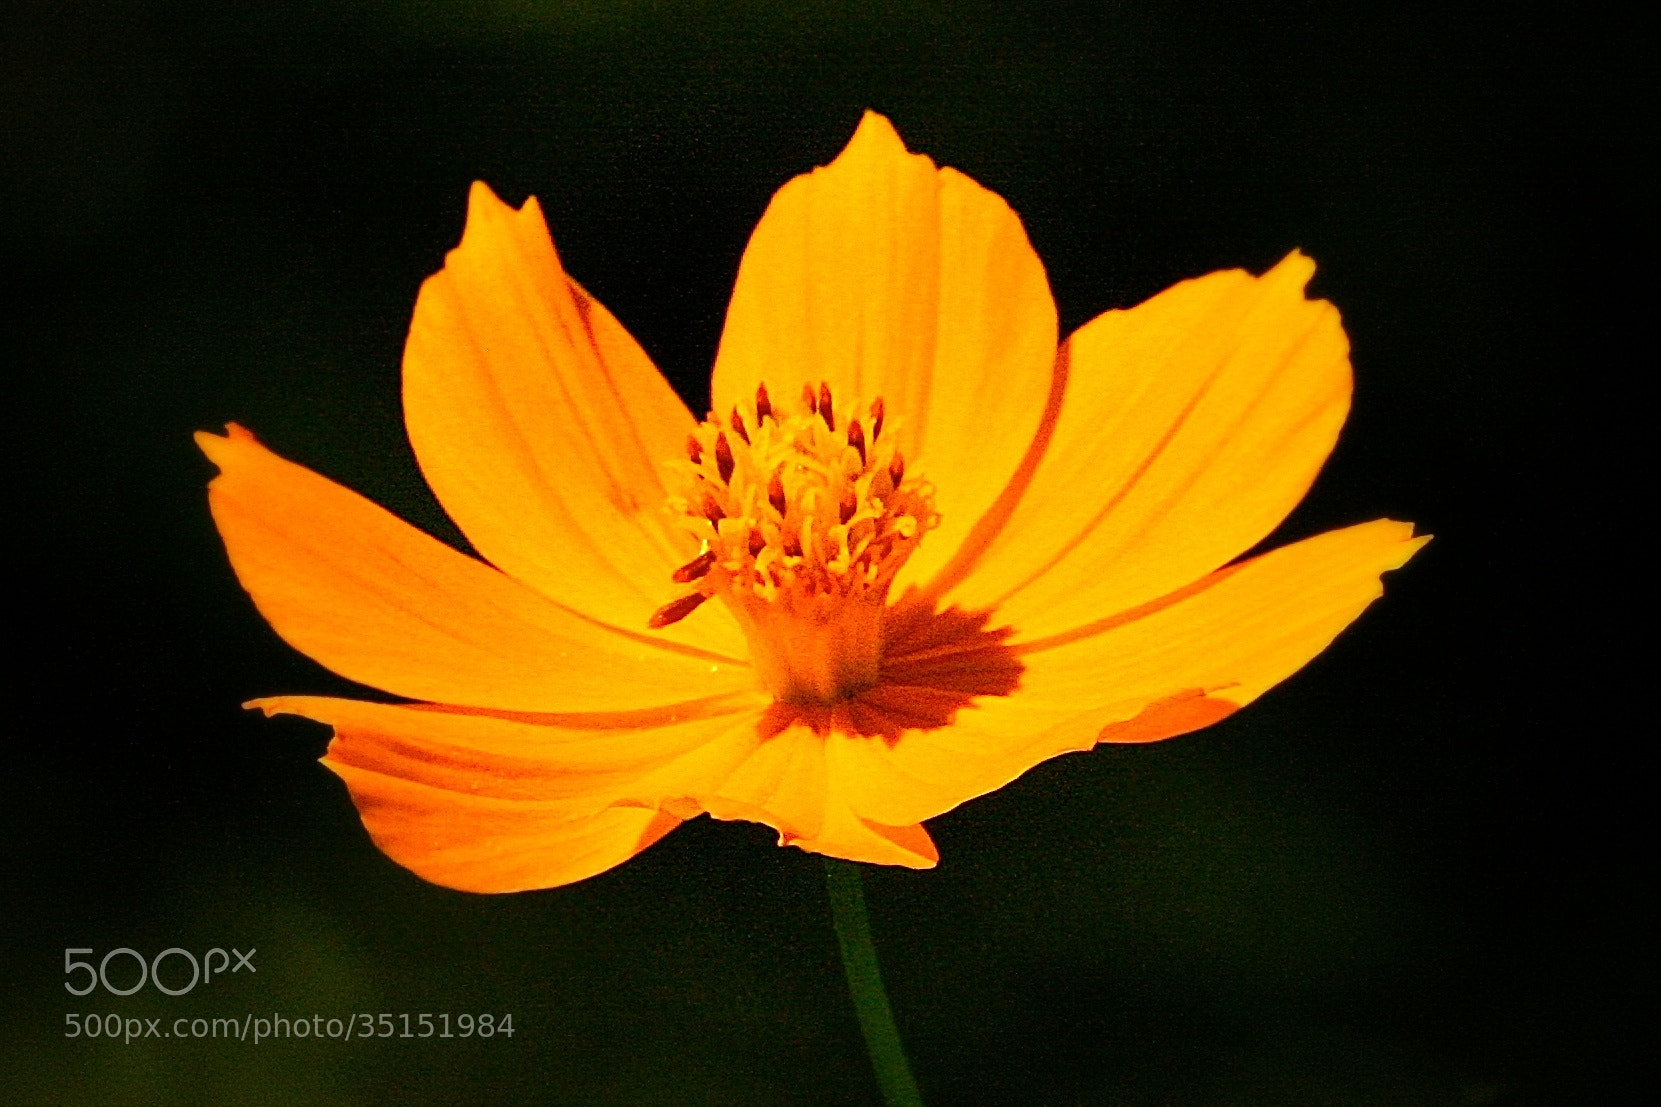 Photograph Kissed by the Sun! by Karthik Gellia on 500px